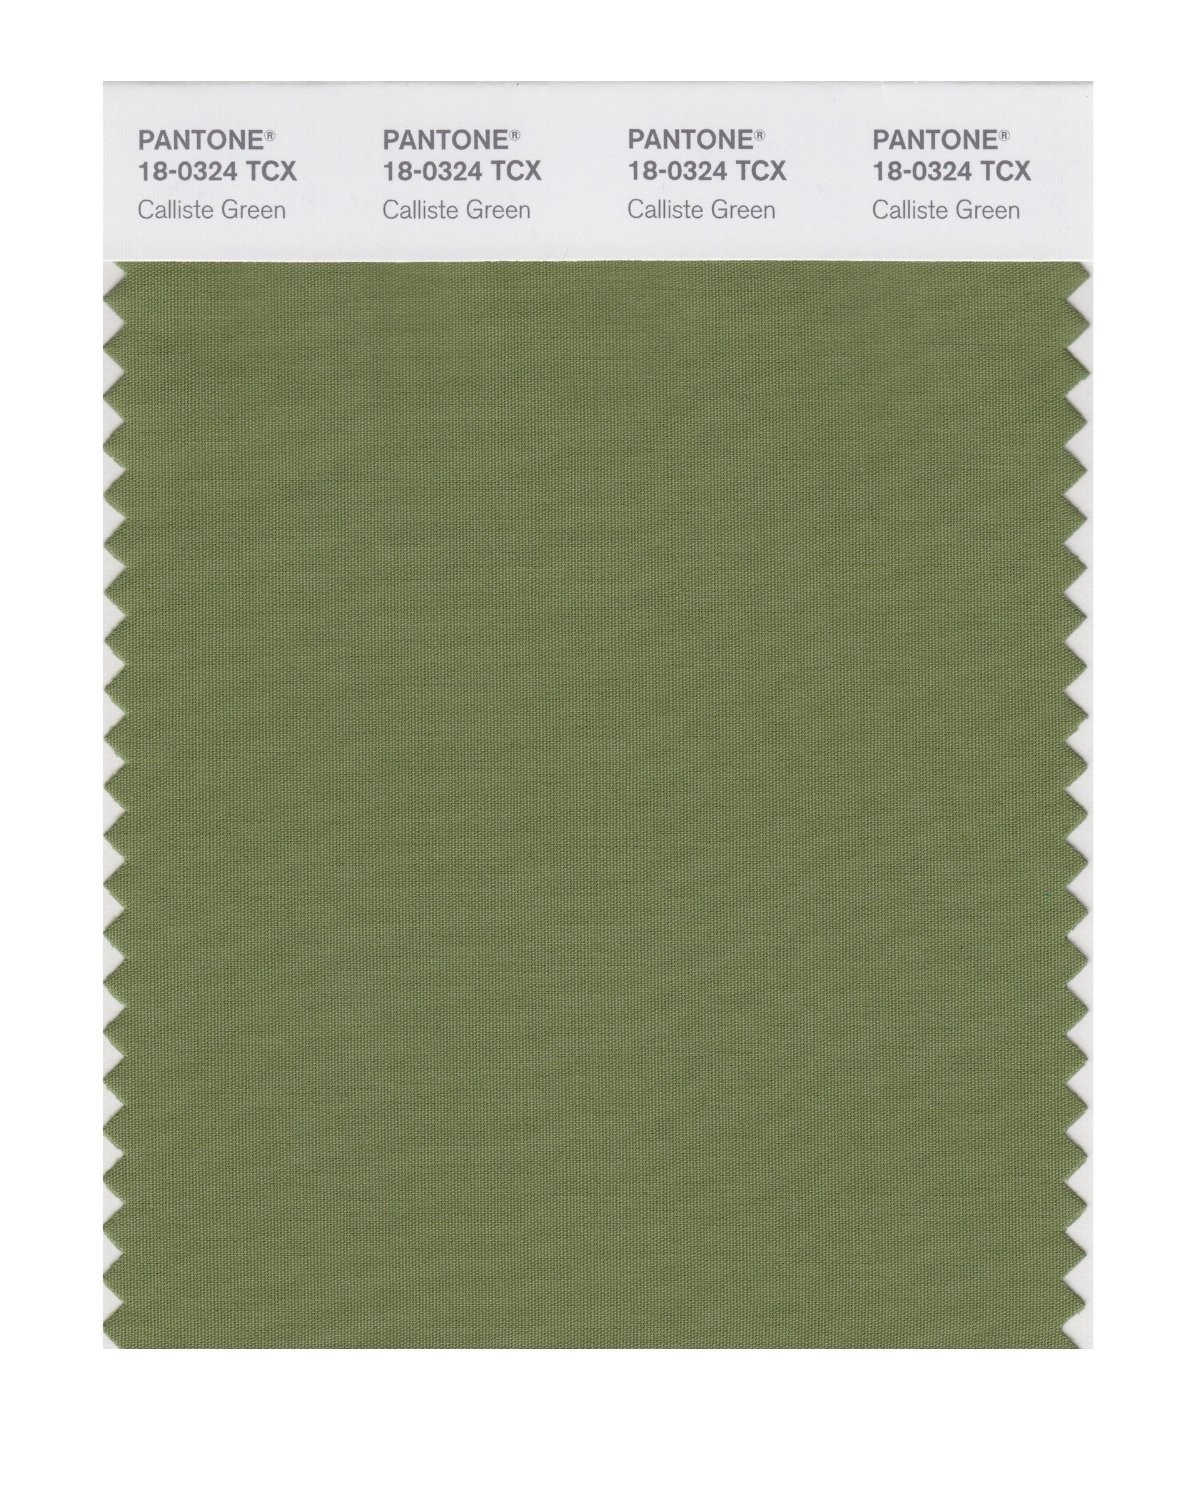 Pantone 18-0324 TCX Swatch Card Calliste Green